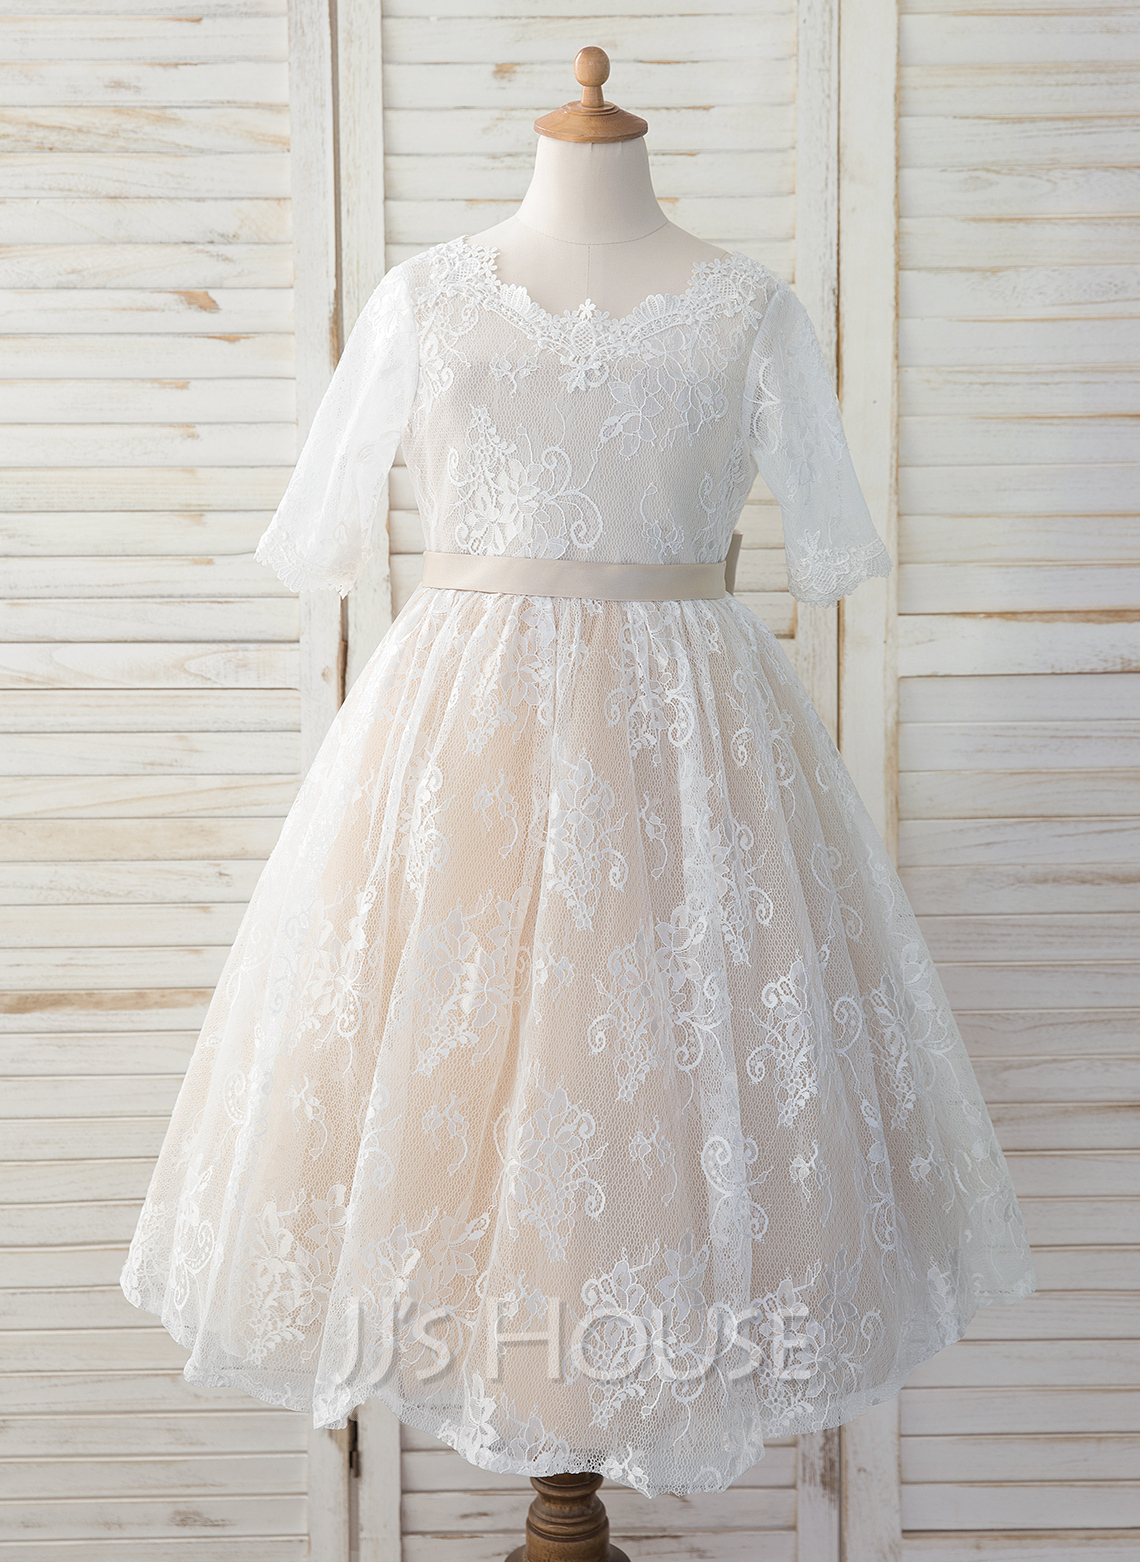 A-Line Tea-length Flower Girl Dress - Tulle/Lace 3/4 Sleeves Scoop Neck With Bow(s)